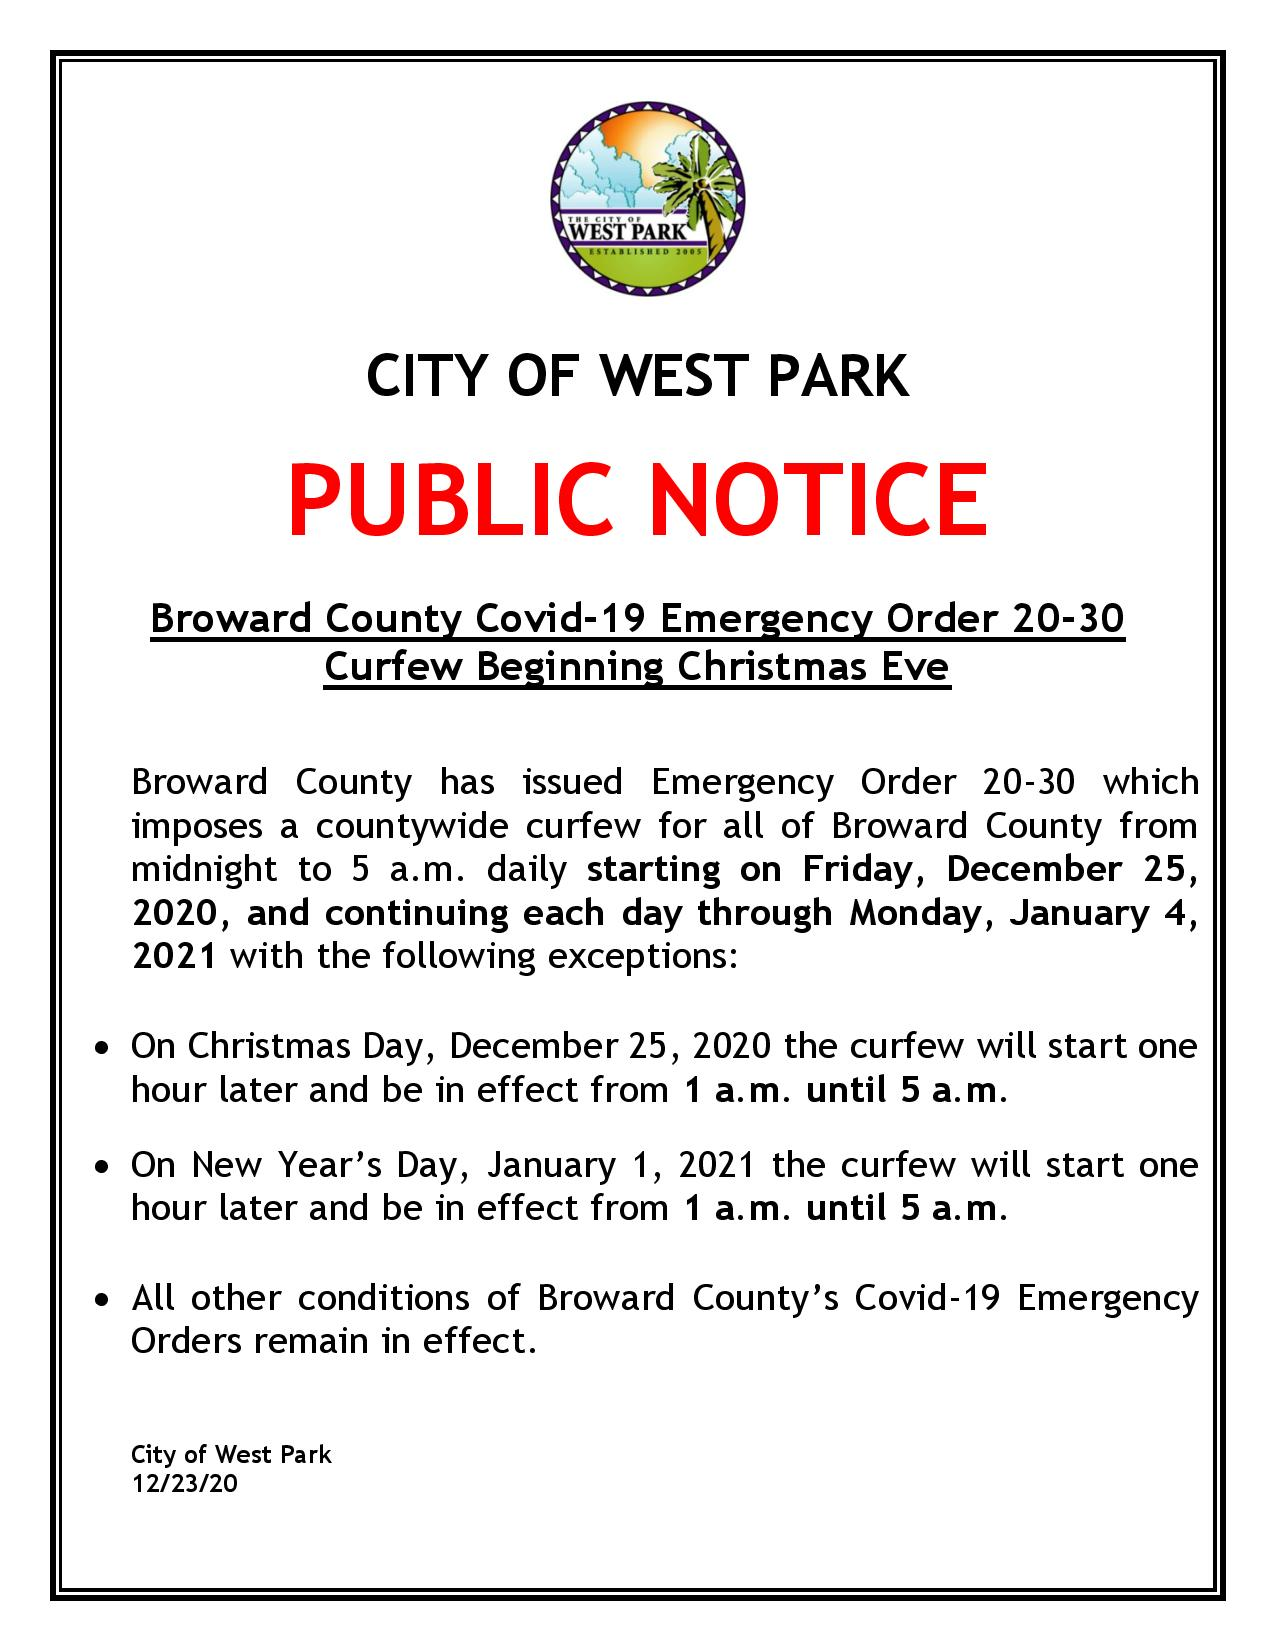 PUBLIC NOTICE - BROWARD COUNTY CURFEW - CHRISTMAS EVE - 12-23-20.pdf